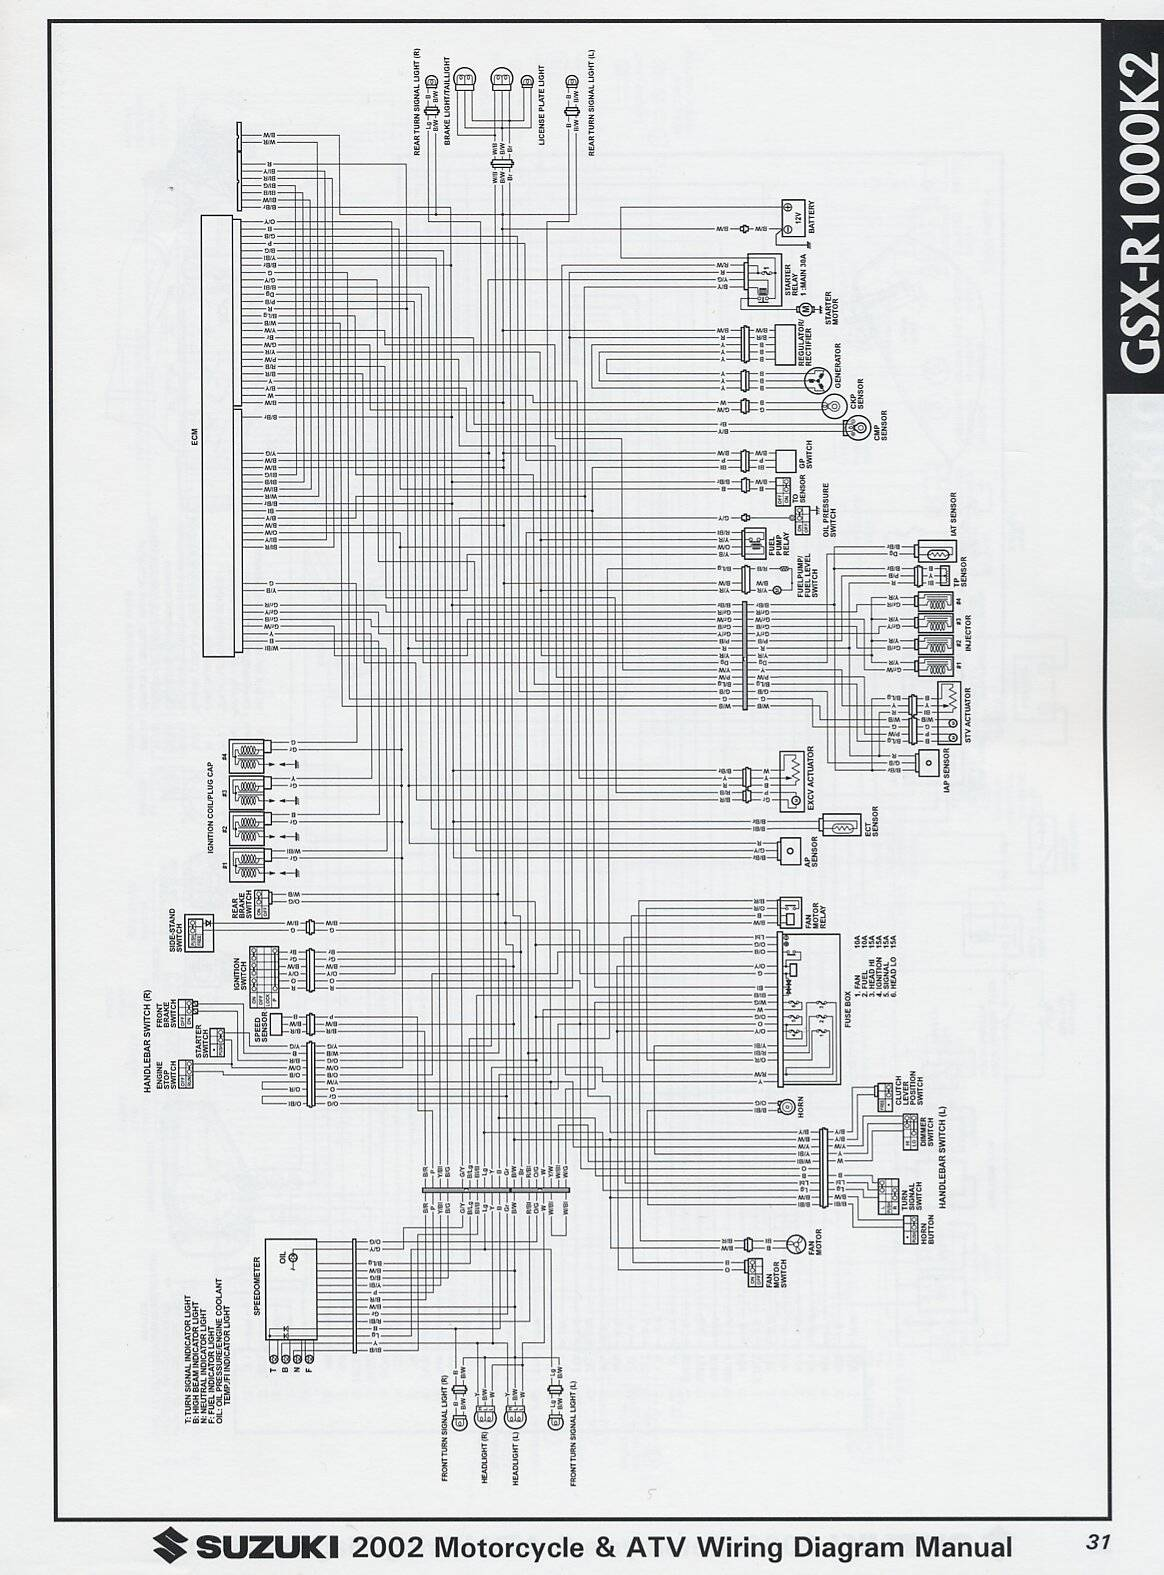 Index Of Honda Ct 90 K 1 Wiring Diagram